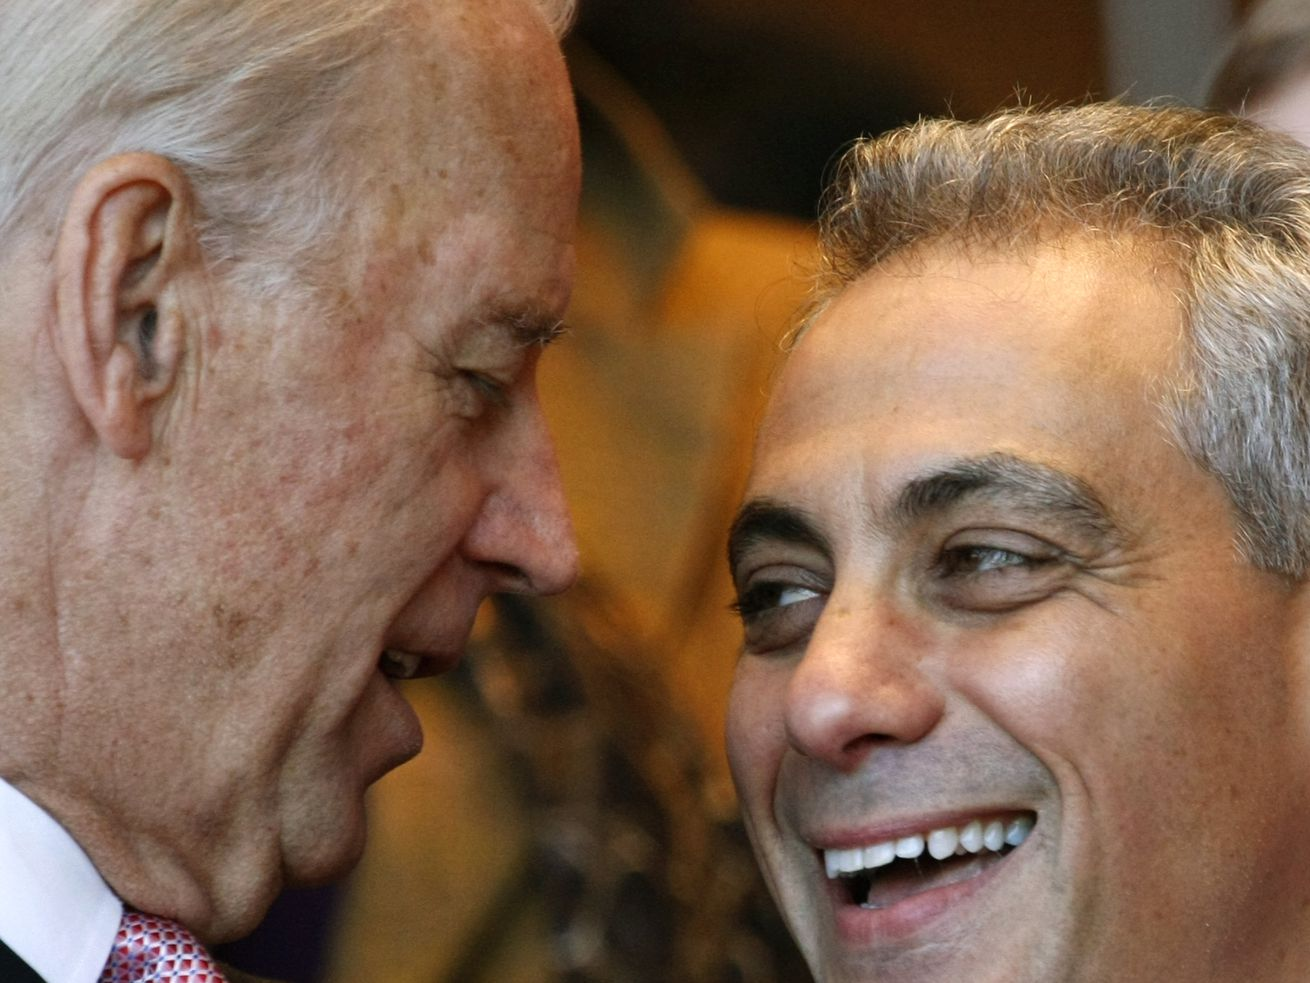 Chicago Mayor-elect Rahm Emanuel, right, shares a laugh with Vice President Joe Biden during inaugural ceremonies Monday, May 16, 2011 in Chicago. (AP Photo/Charles Rex Arbogast)